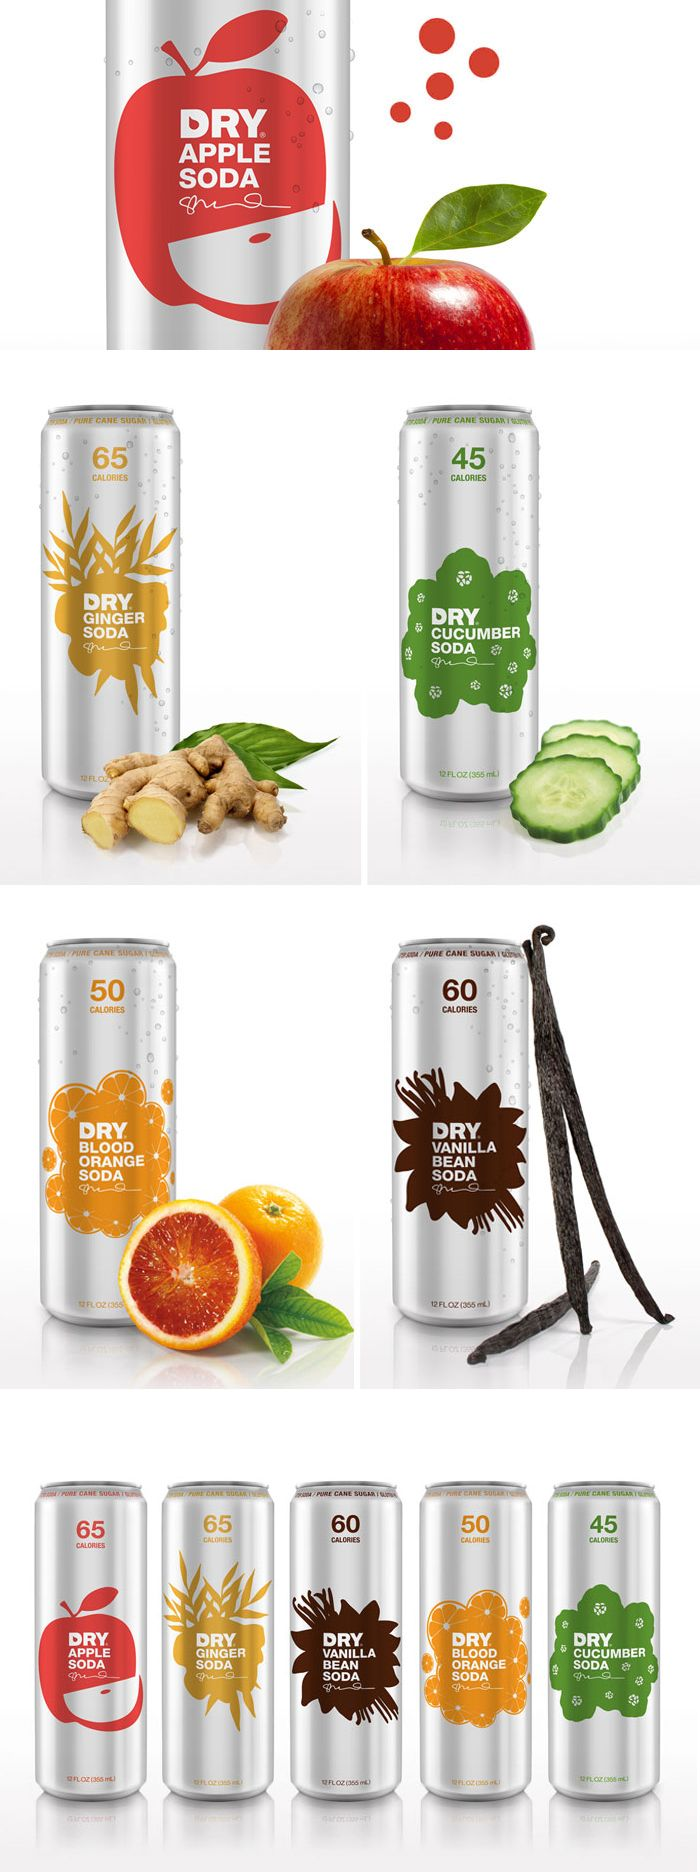 Dry Soda |  Designed by Turnstyle, Seatle